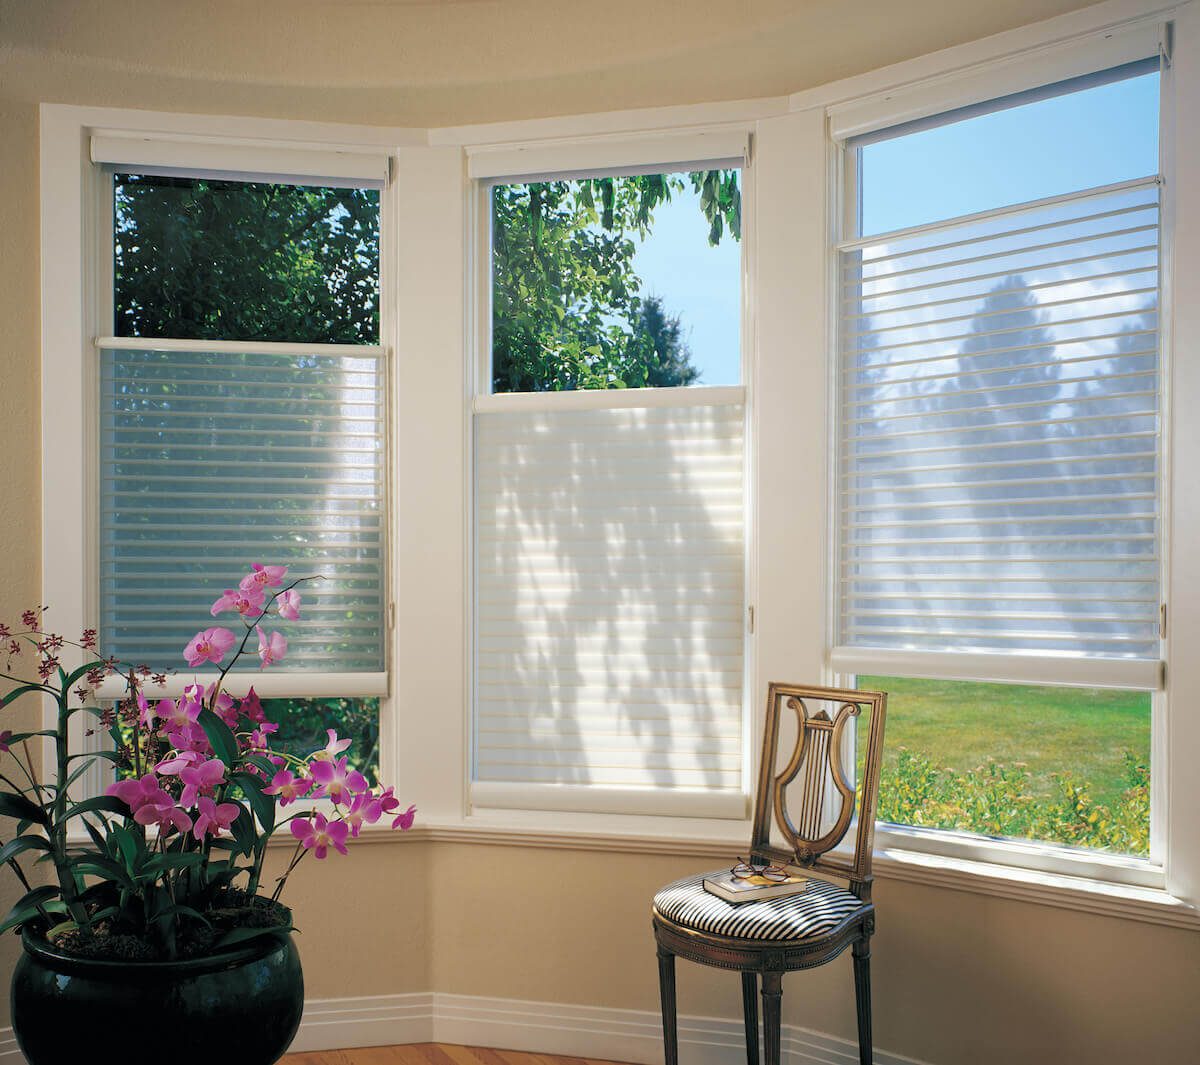 Window treatment ideas for bay windows - Window treatment ideas pictures ...